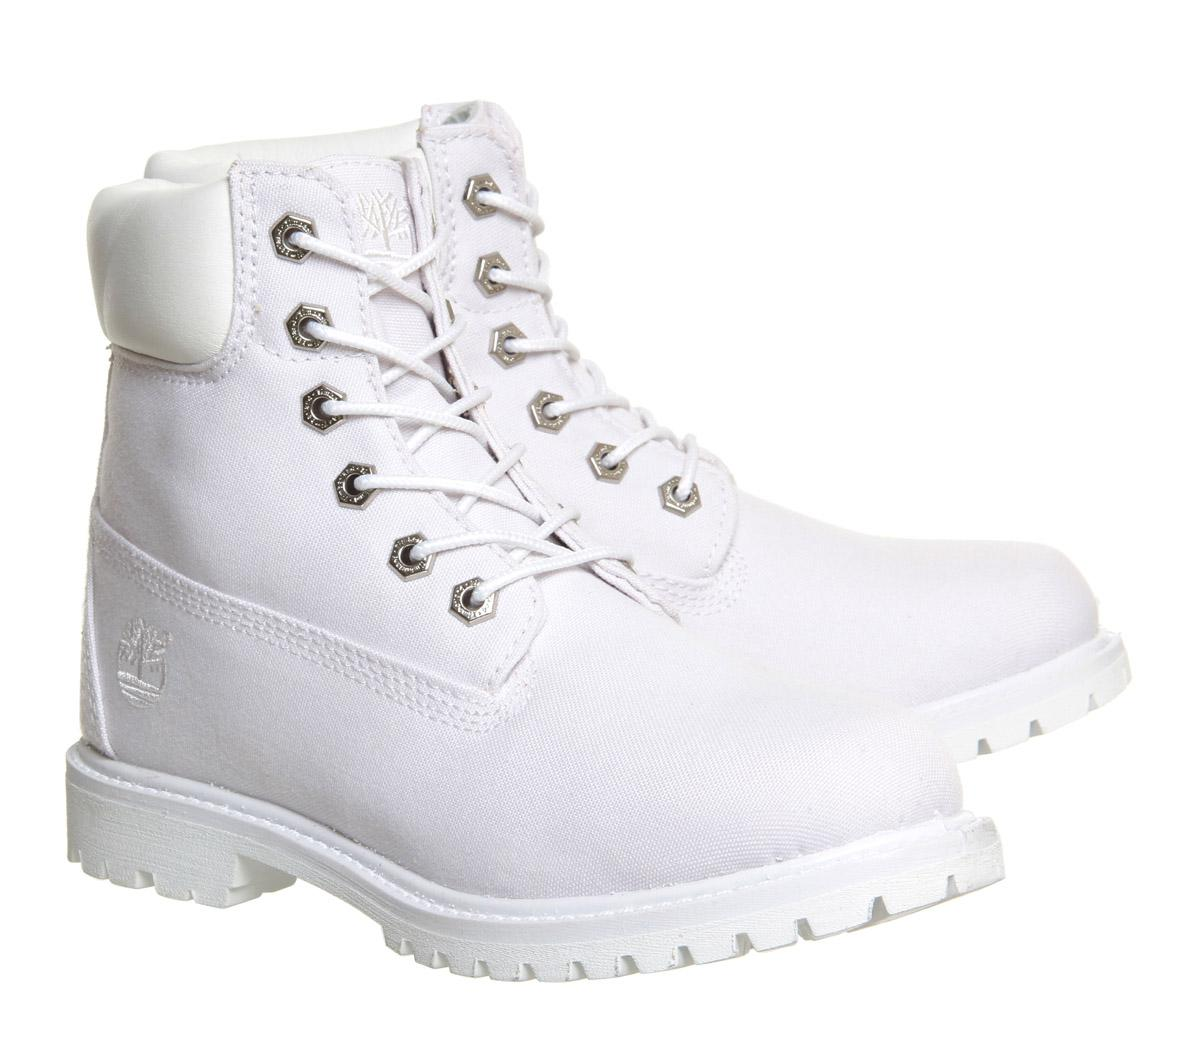 Lyst - Timberland Premium 6 Boots in White 54d7e83571